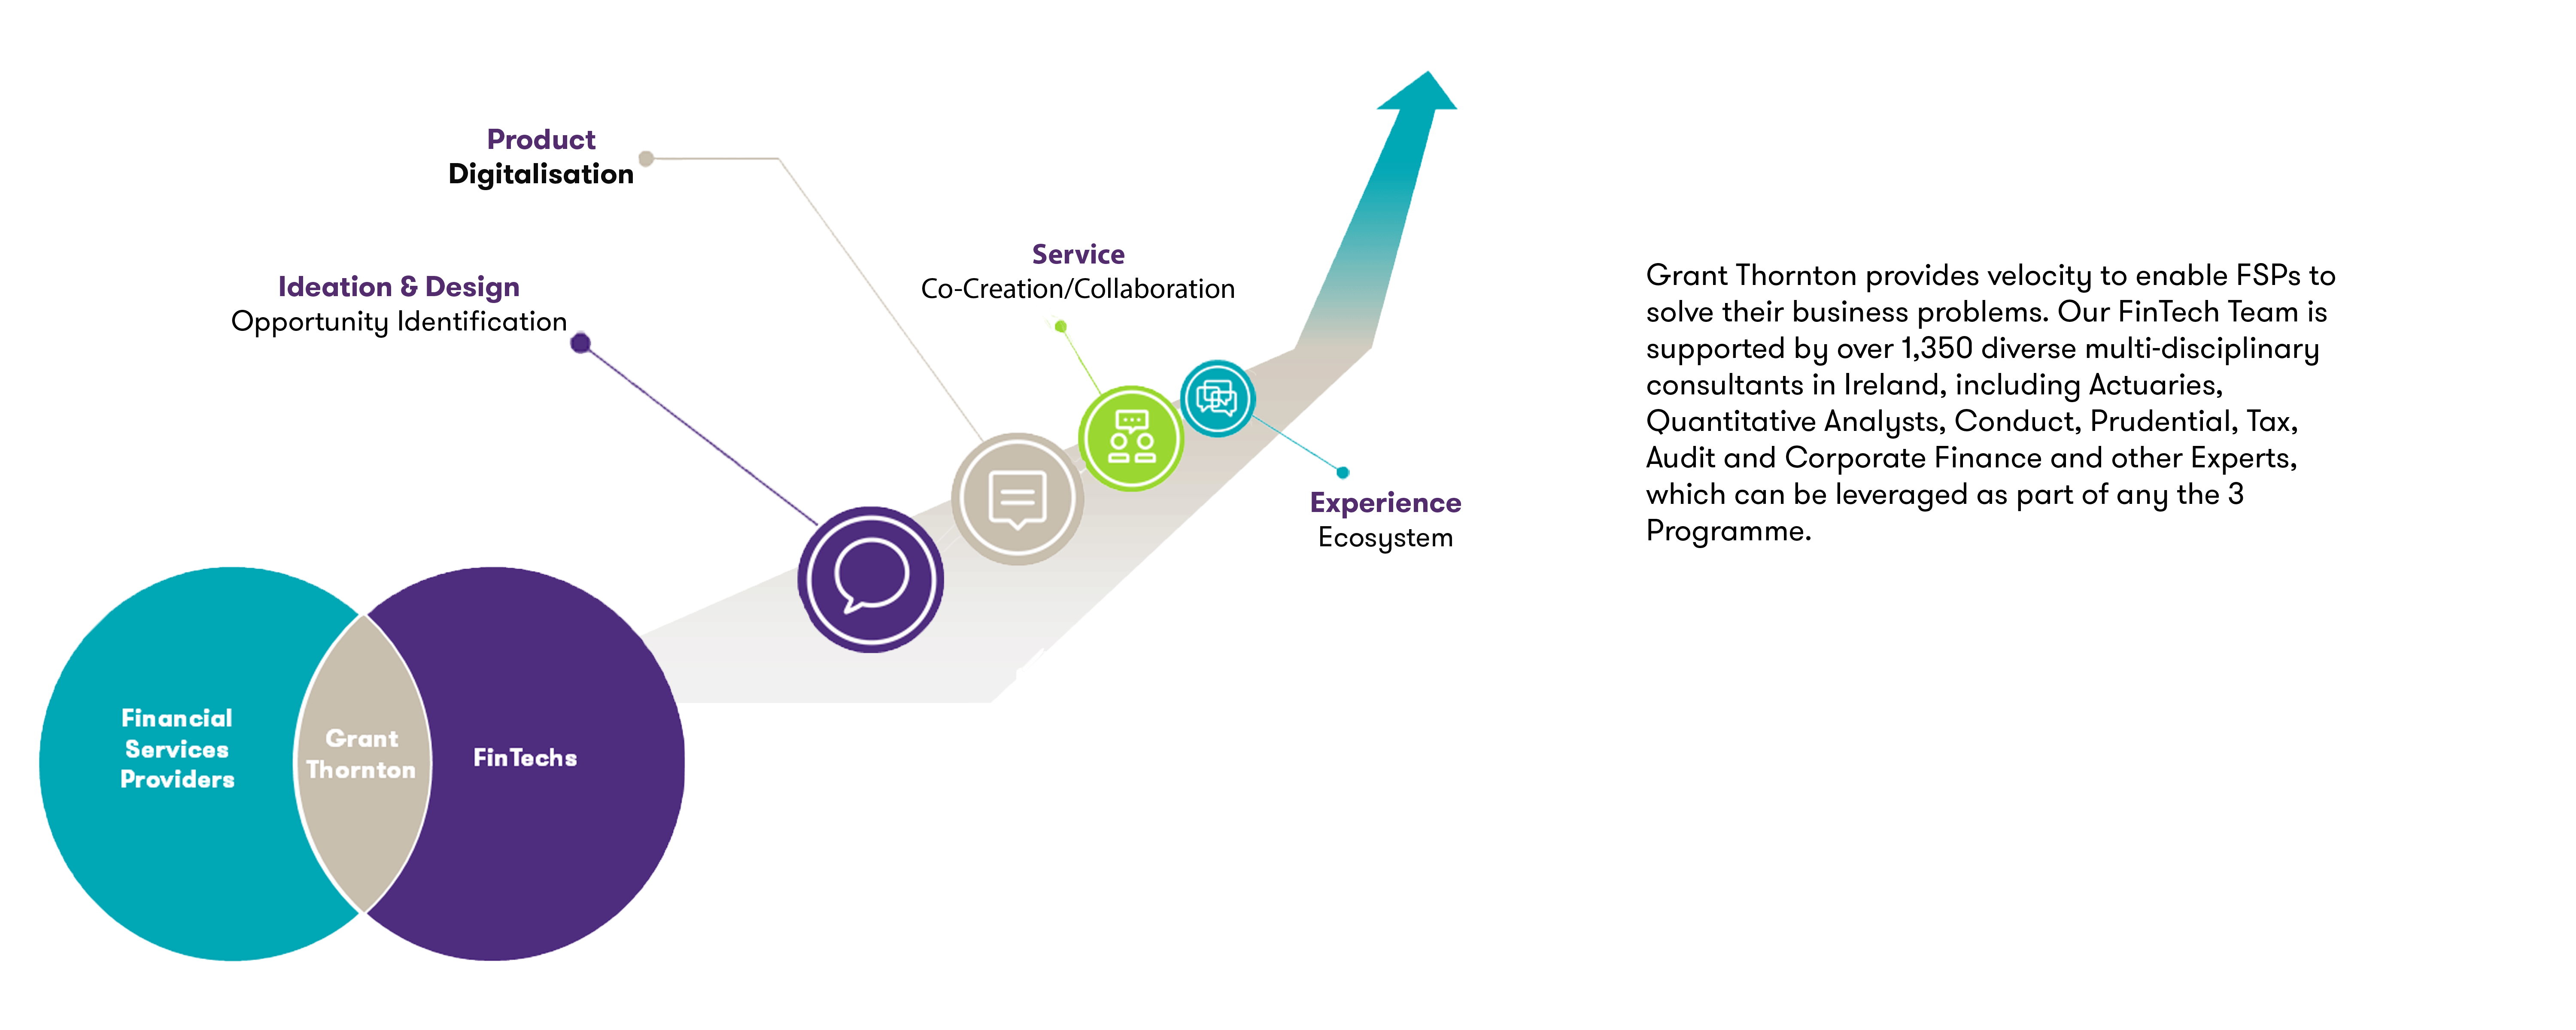 Grant-Thornton-Client-Enablement4.png